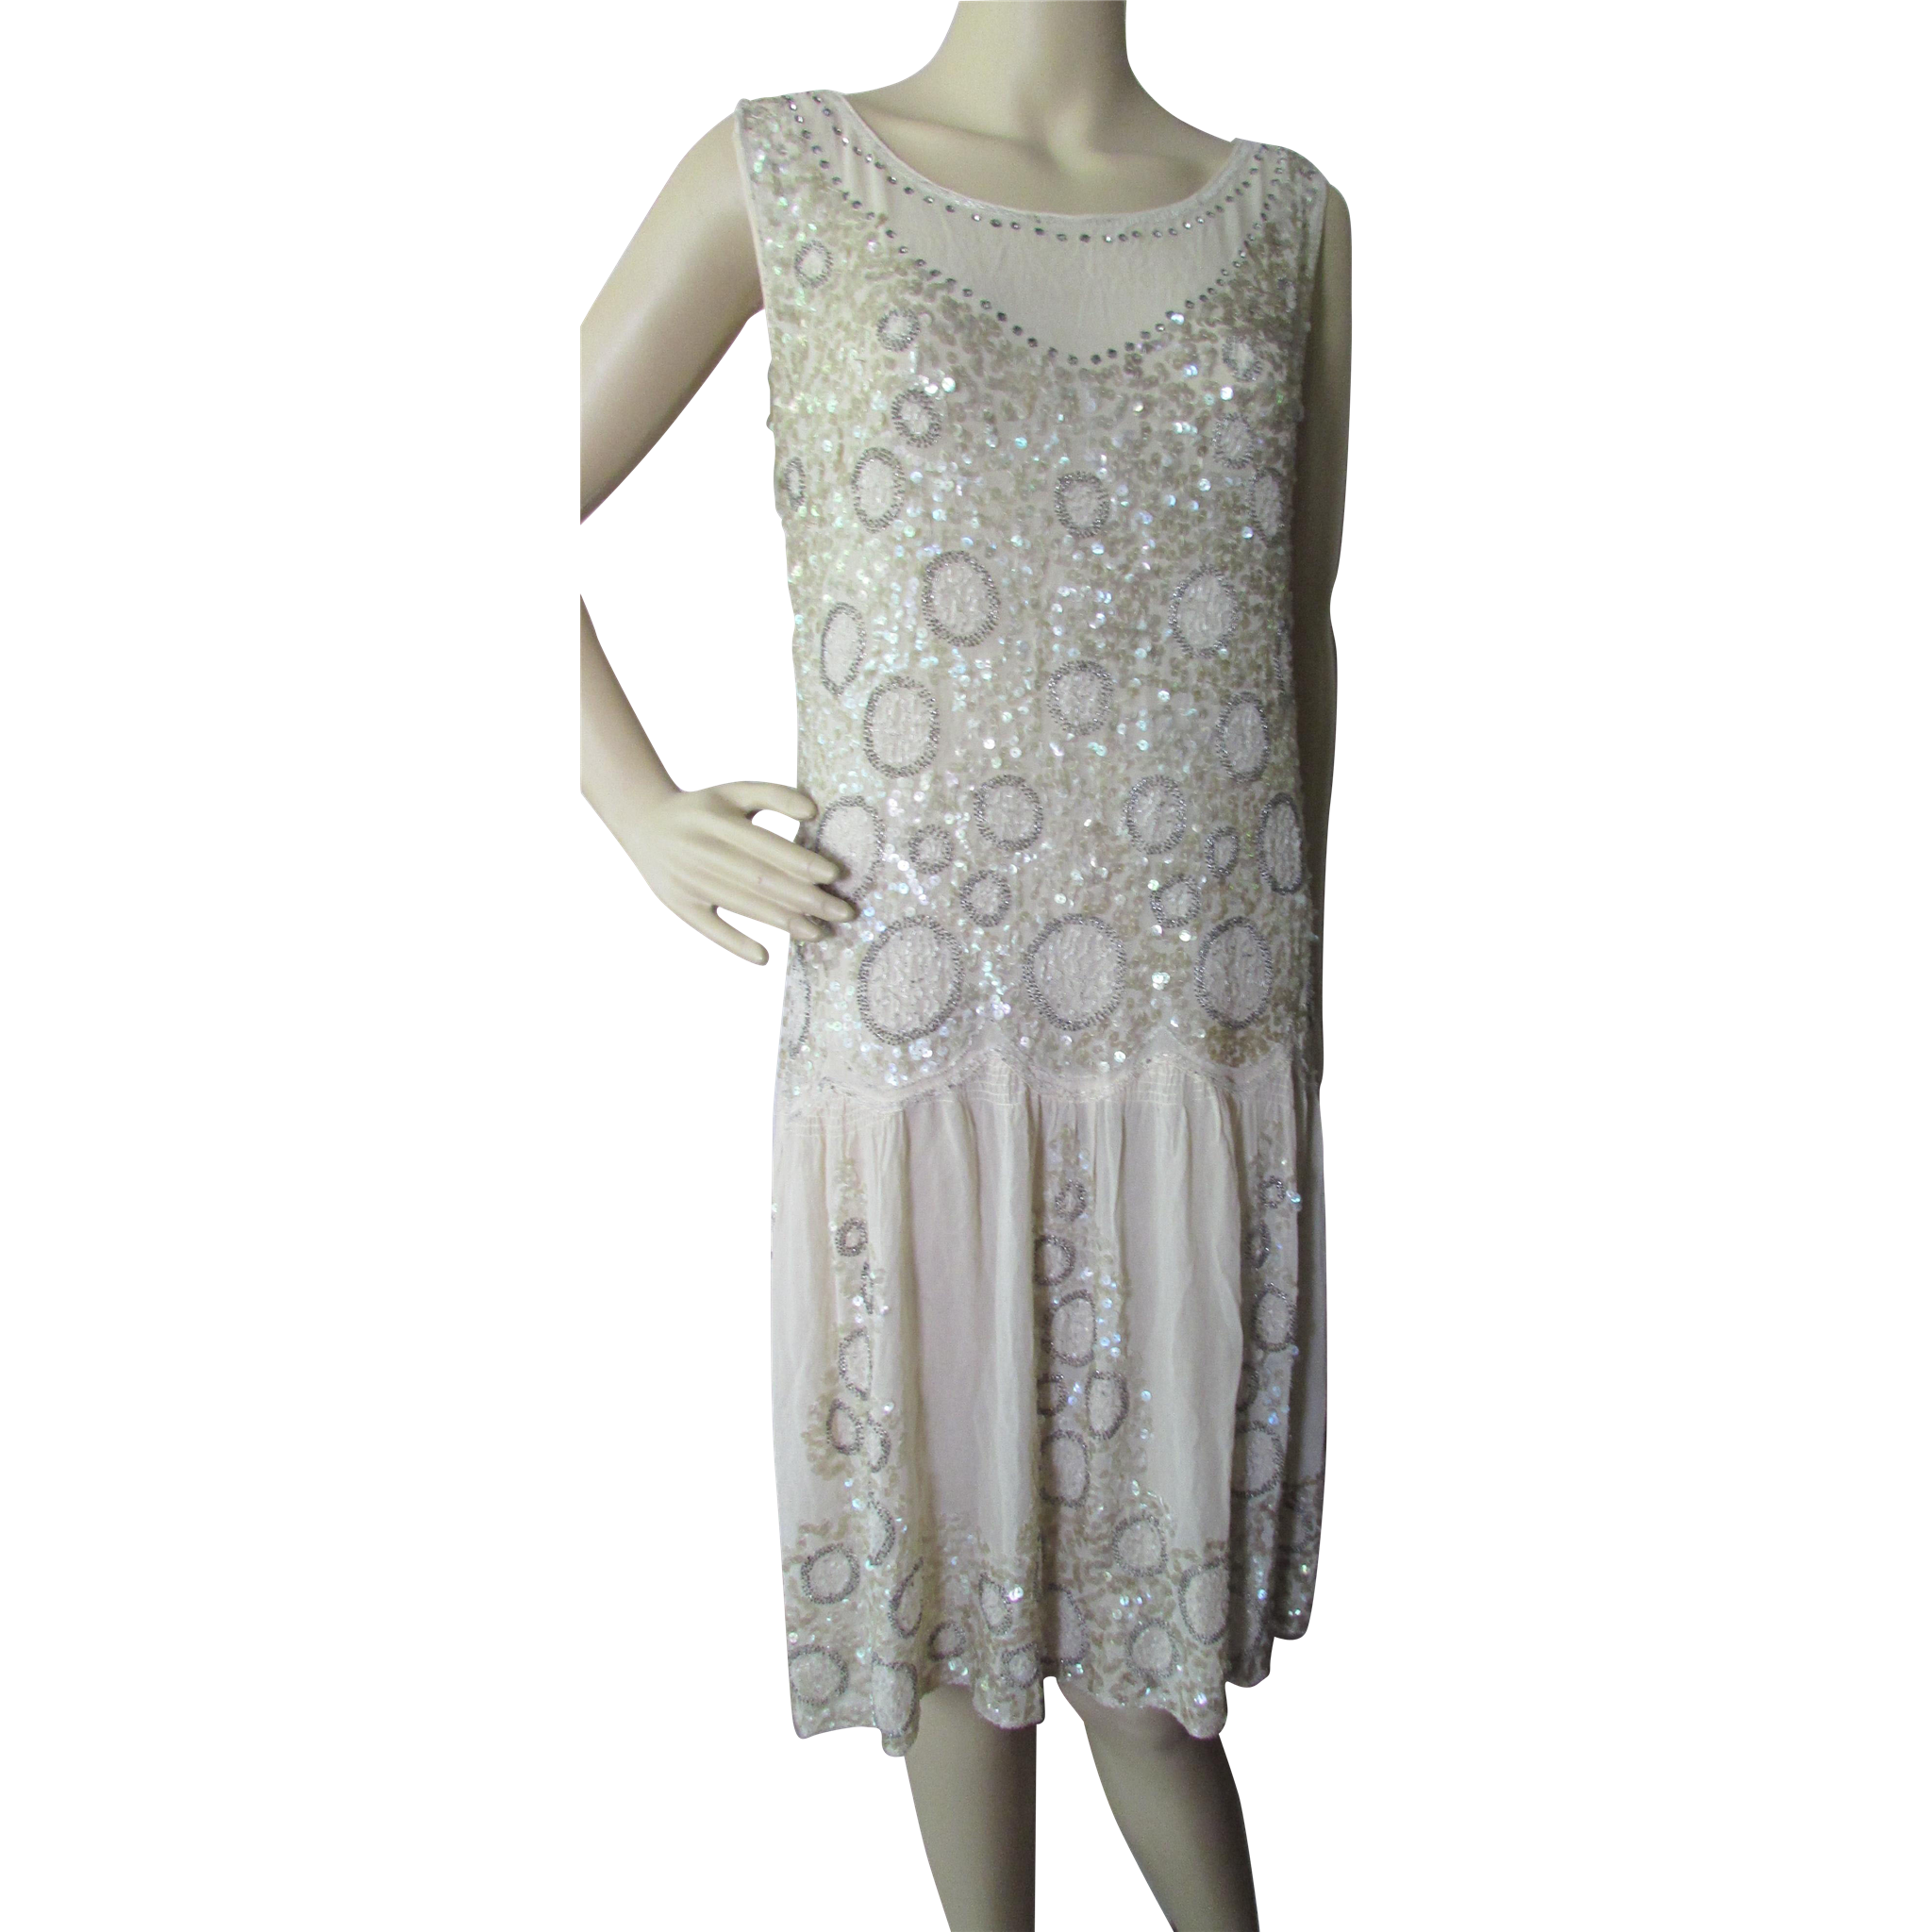 Deco Era Beaded Dress in Chiffon and Sequins Champagne Tone Flapper Dress For Display